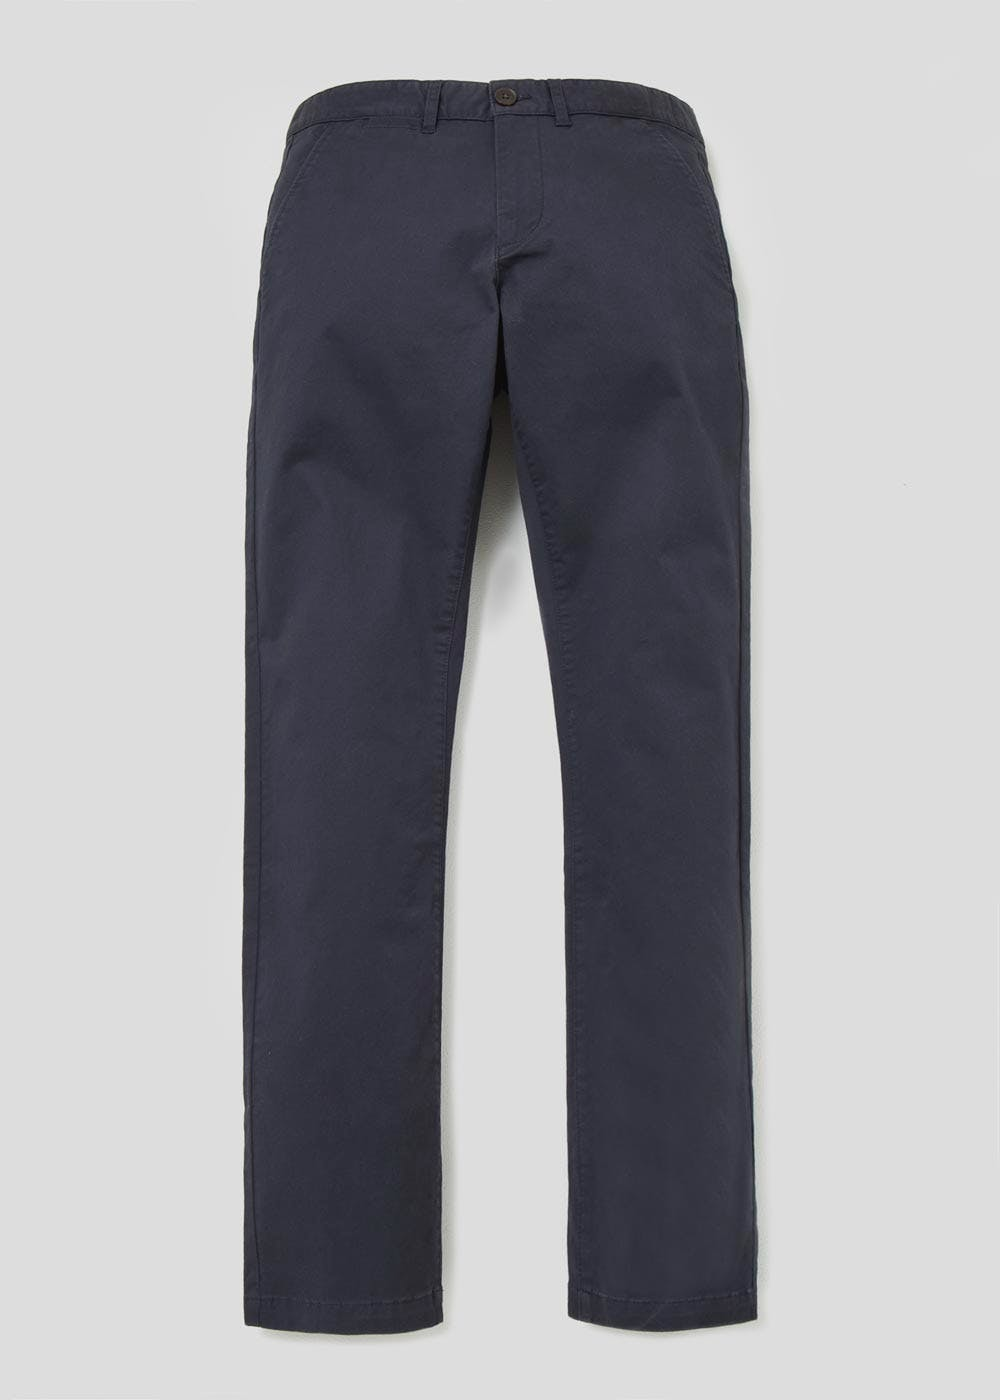 Chino Trousers Navy Matalan Tendencies Chinos Short 32